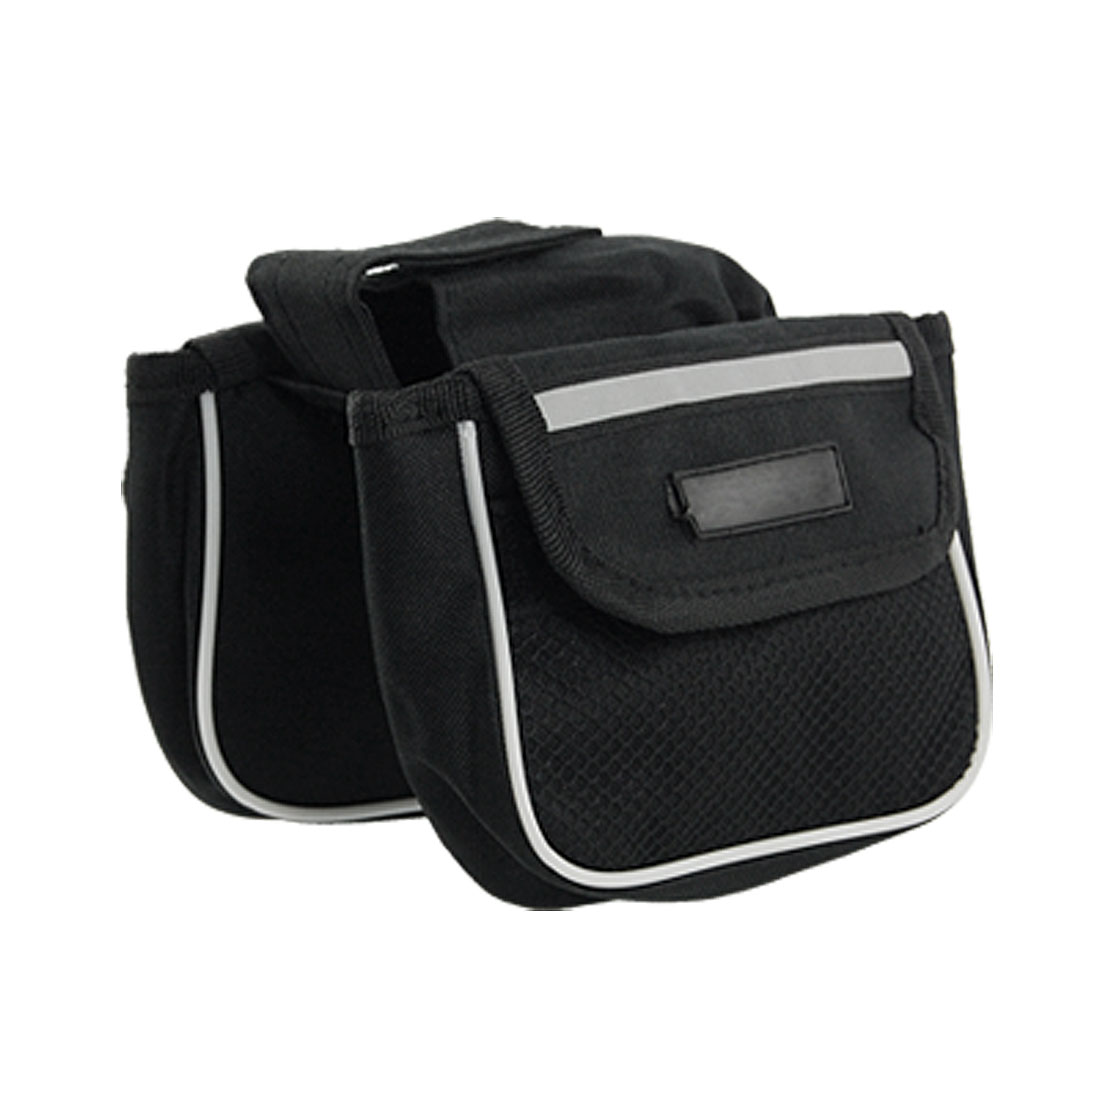 Cycling Bike Bicycle Front Tube 2 in 1 Black Flap Bag